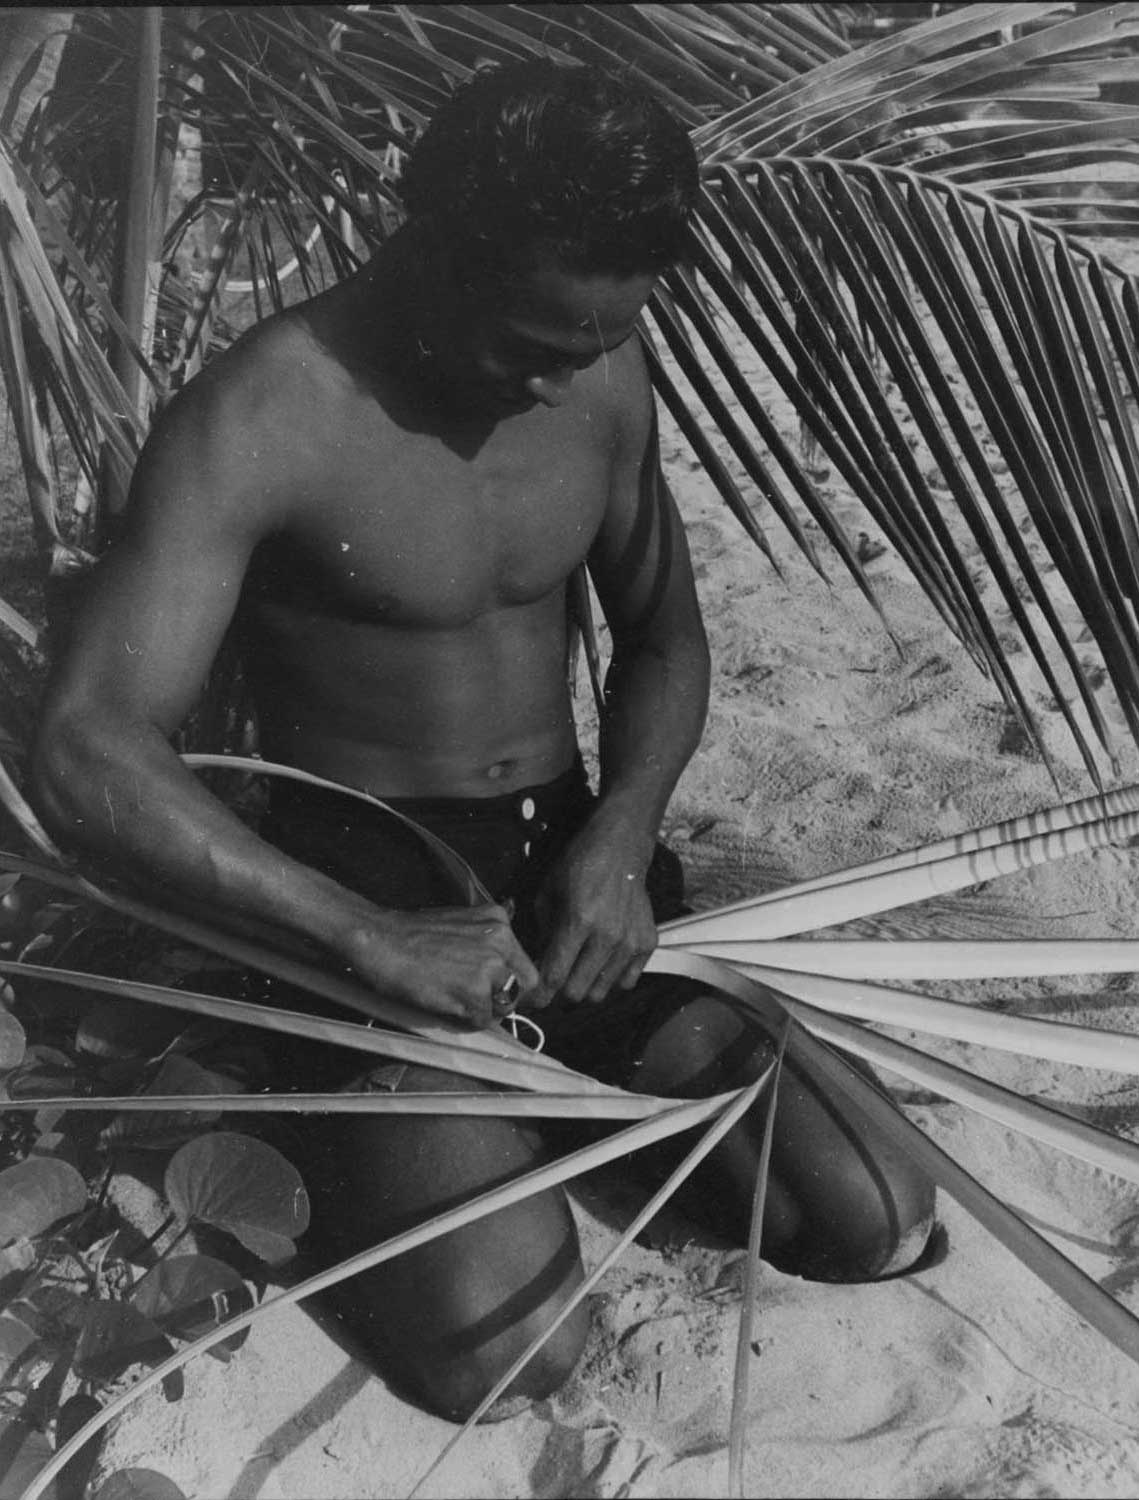 Black and white developed image of a man weaving with coconut leaves.